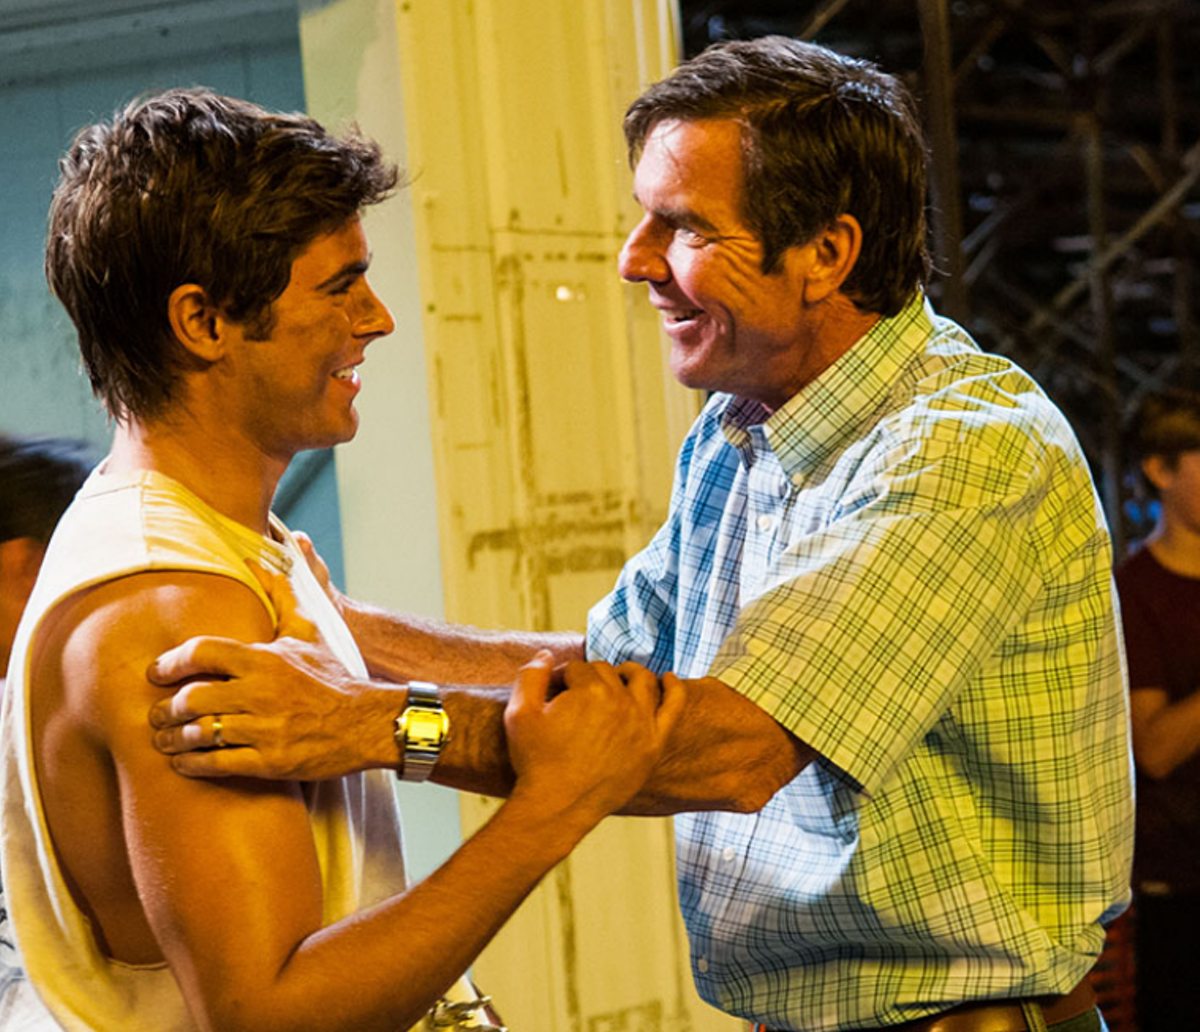 Zac Efron (left) and Dennis Quaid in At Any Price.